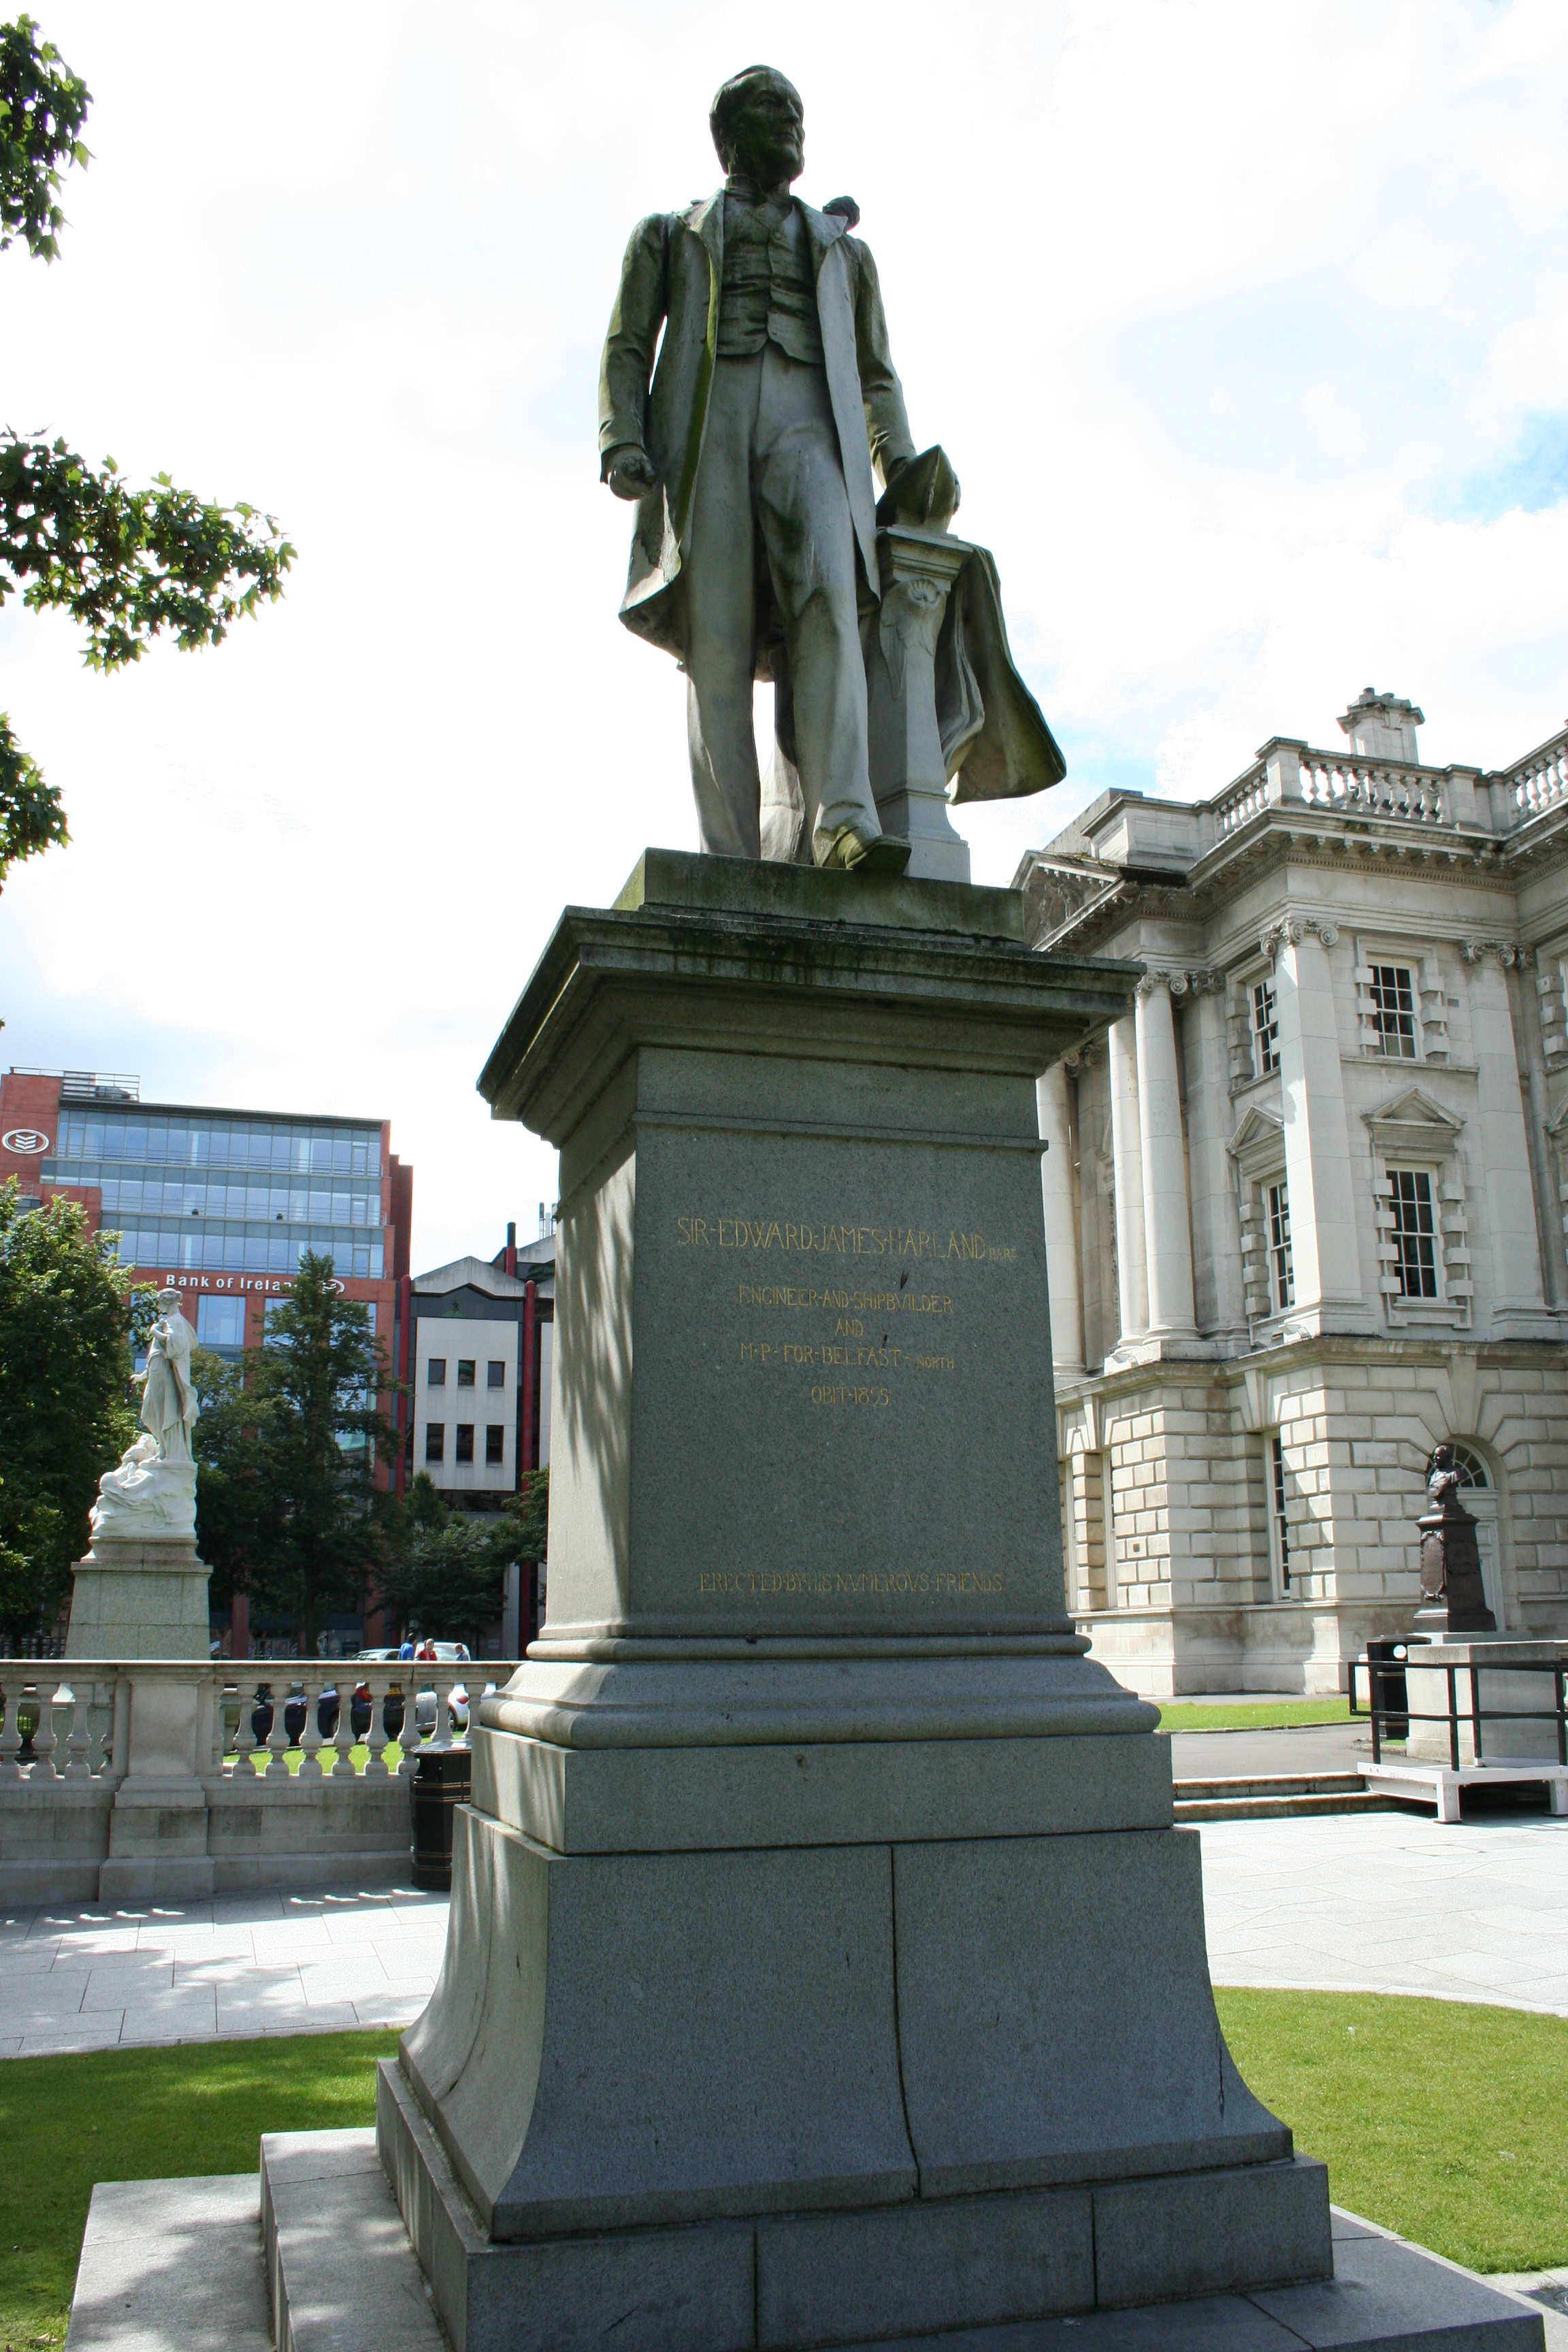 Statue of Edward James Harland in the grounds of Belfast City Hall